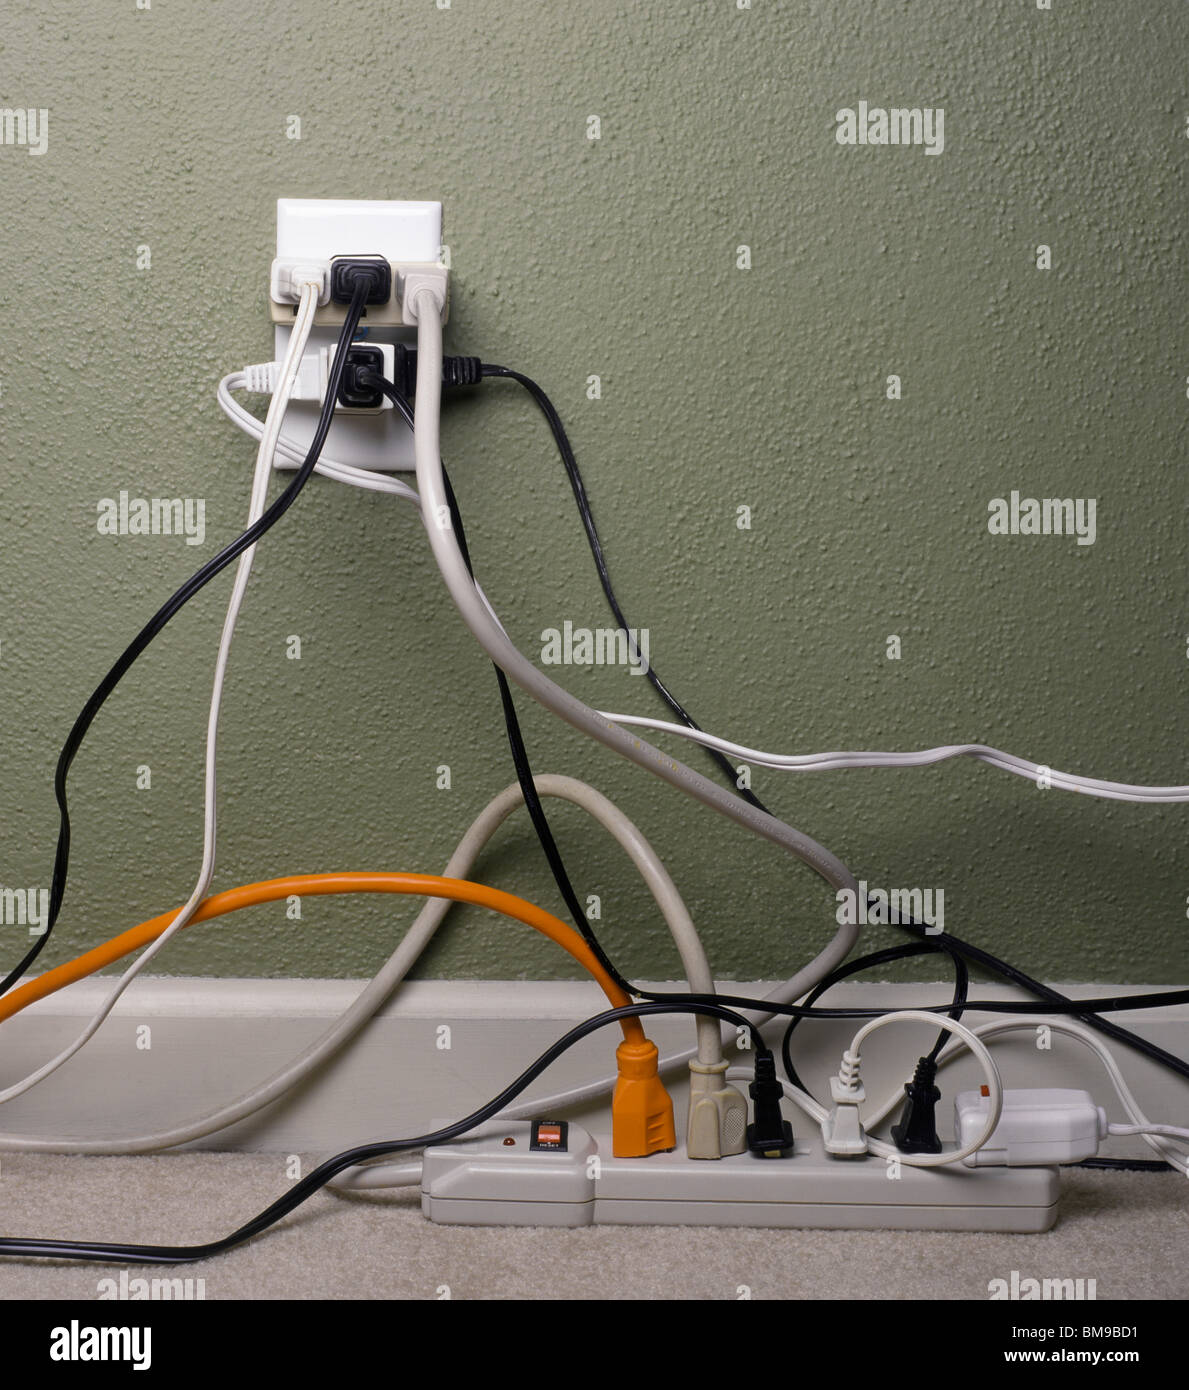 wiring chaos photos wiring chaos images alamy. Black Bedroom Furniture Sets. Home Design Ideas